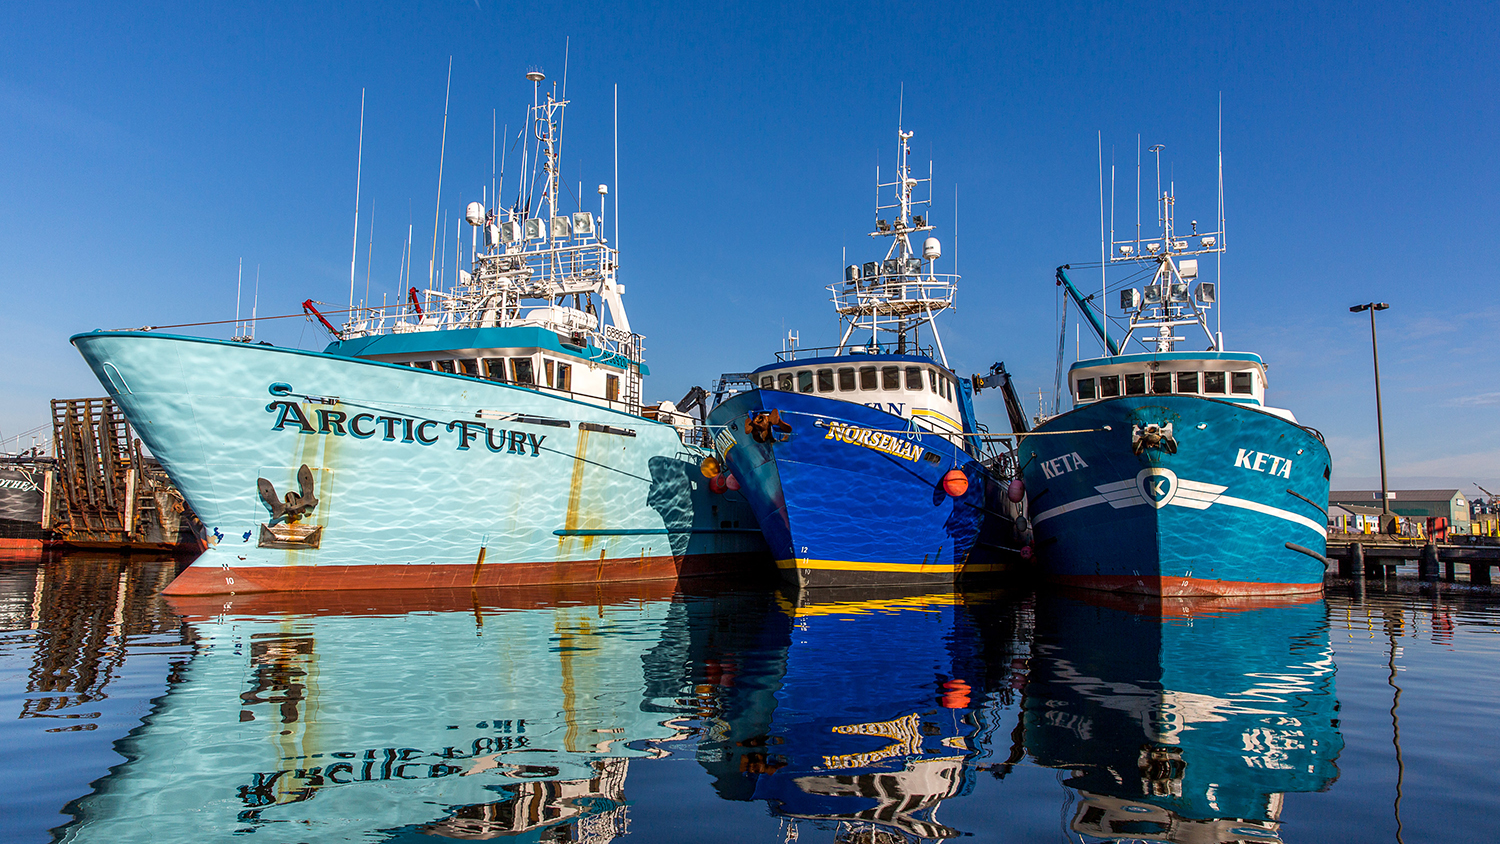 Fishing vessels at Fishermen's Terminal, Port of Seattle, WA. March, 1 2015